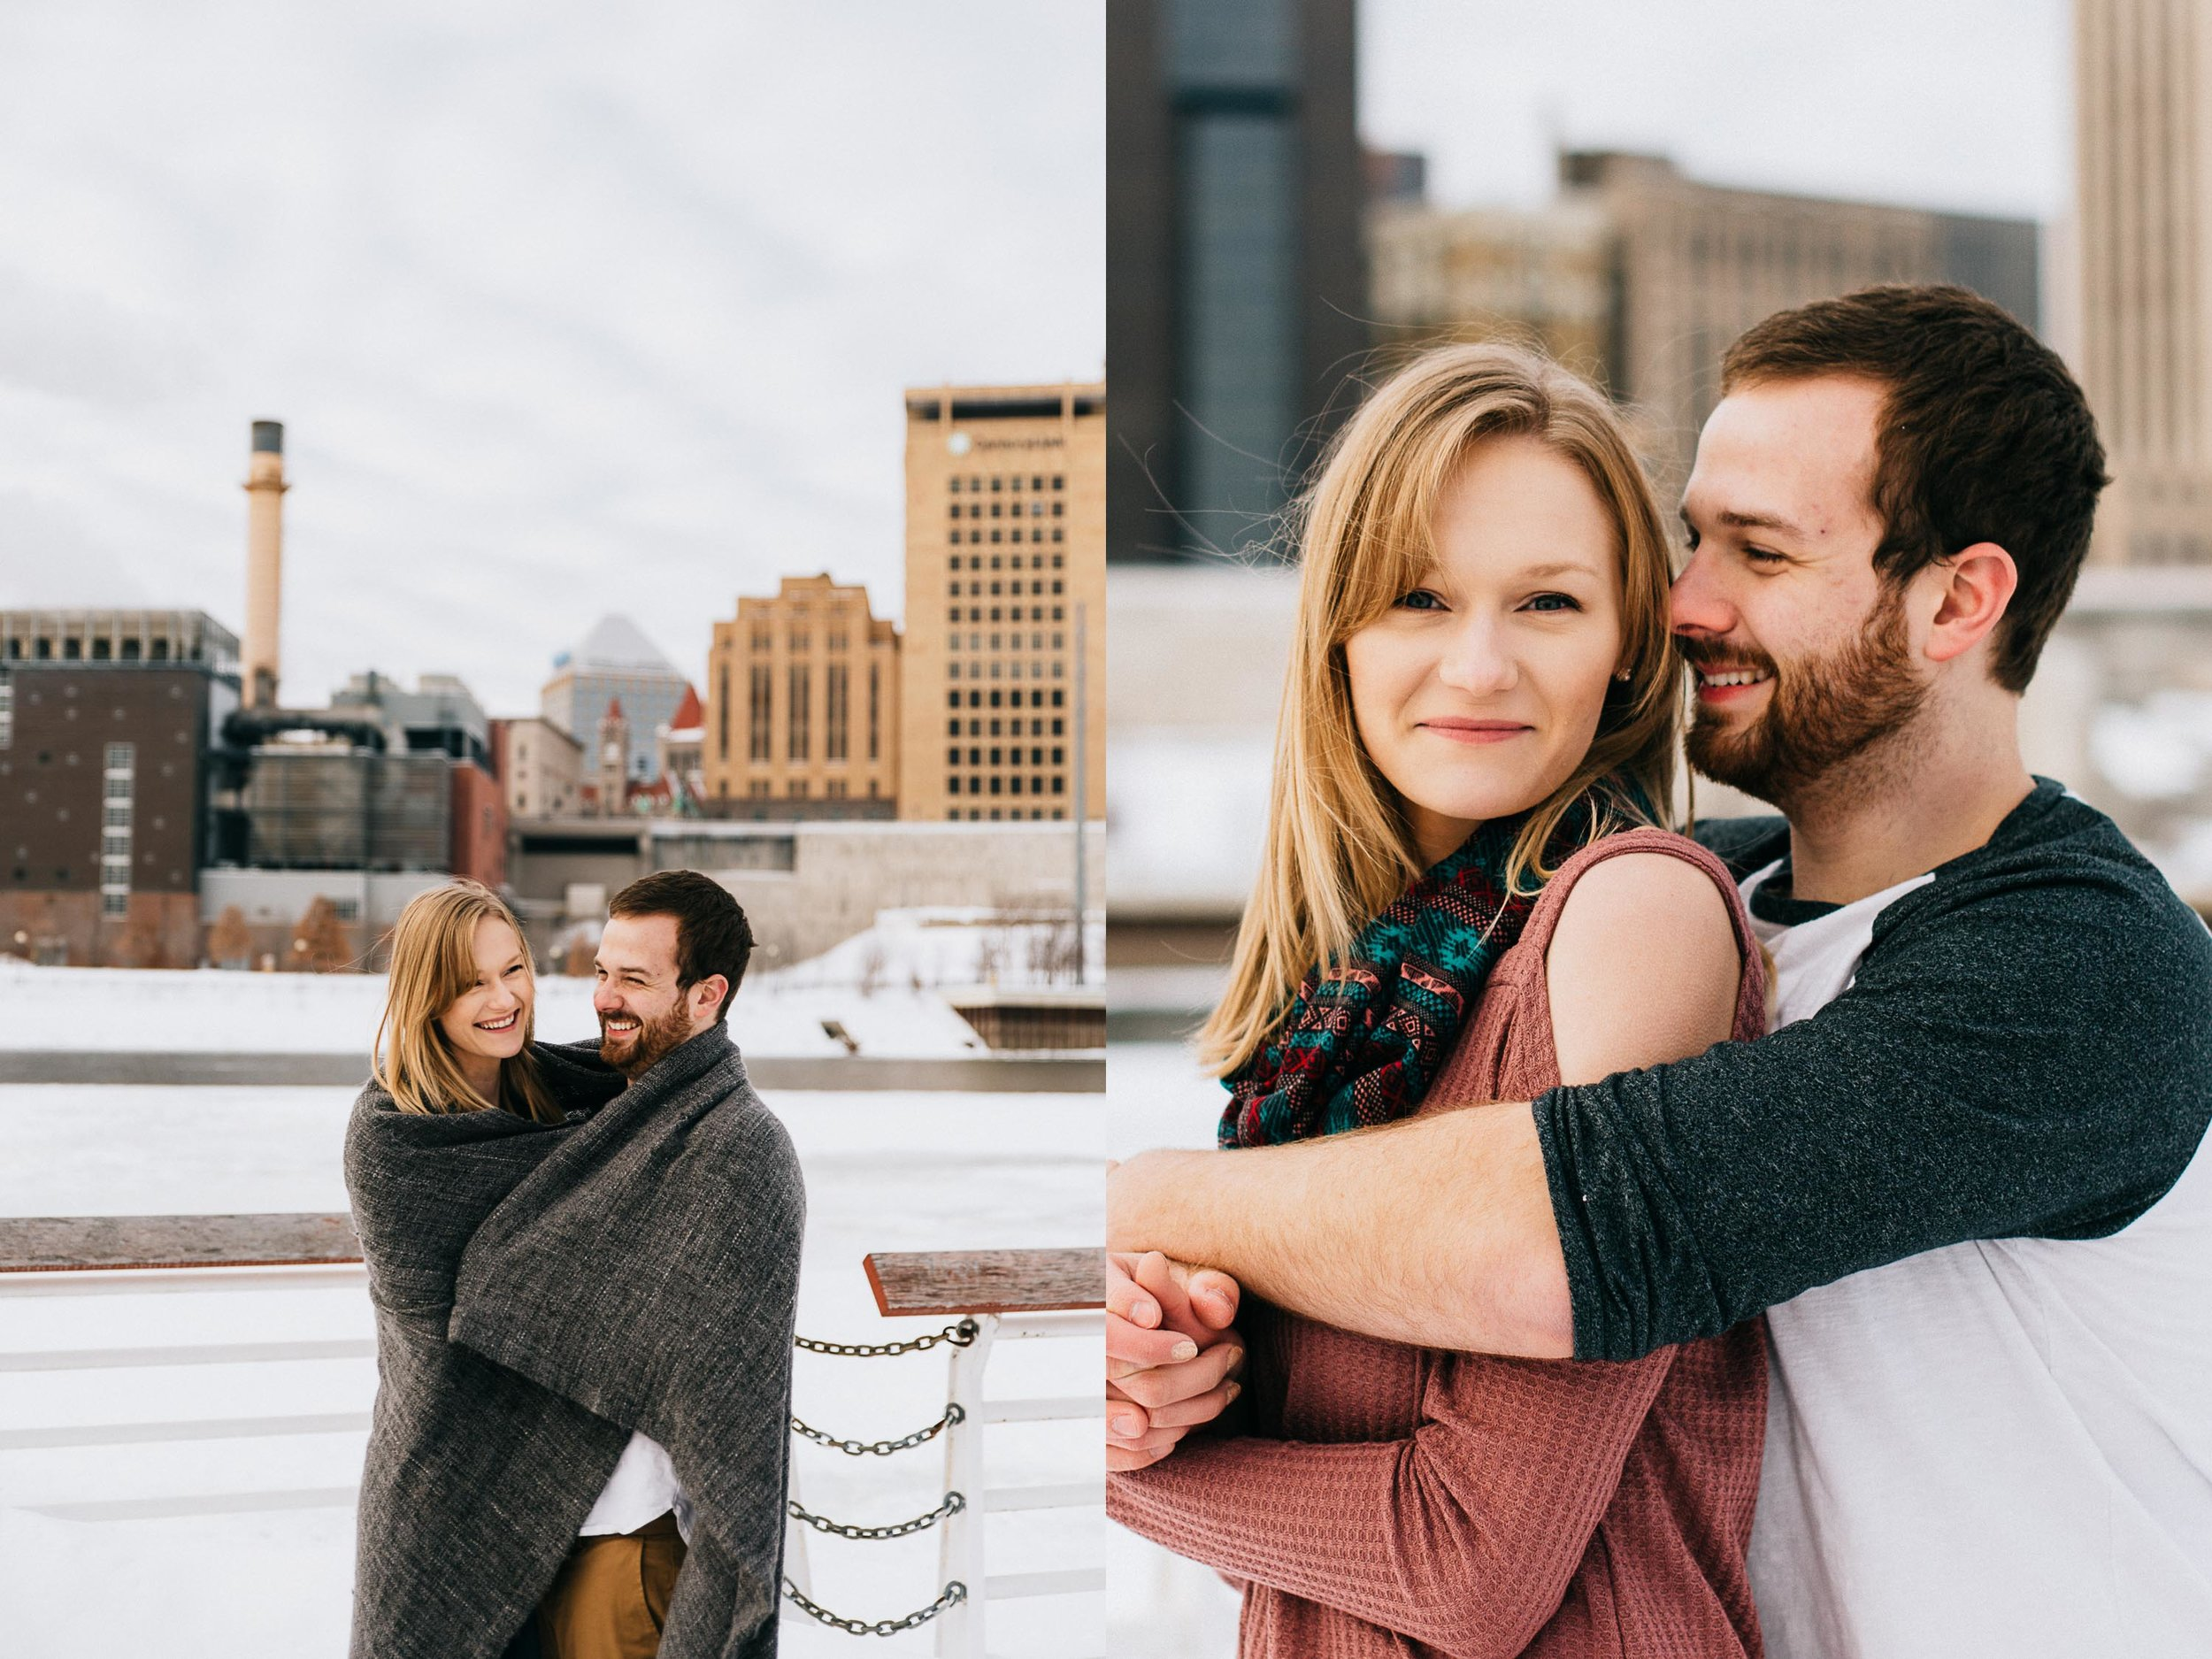 Cody_Mary_Saint_Paul_Winter_Engagement-2.jpg